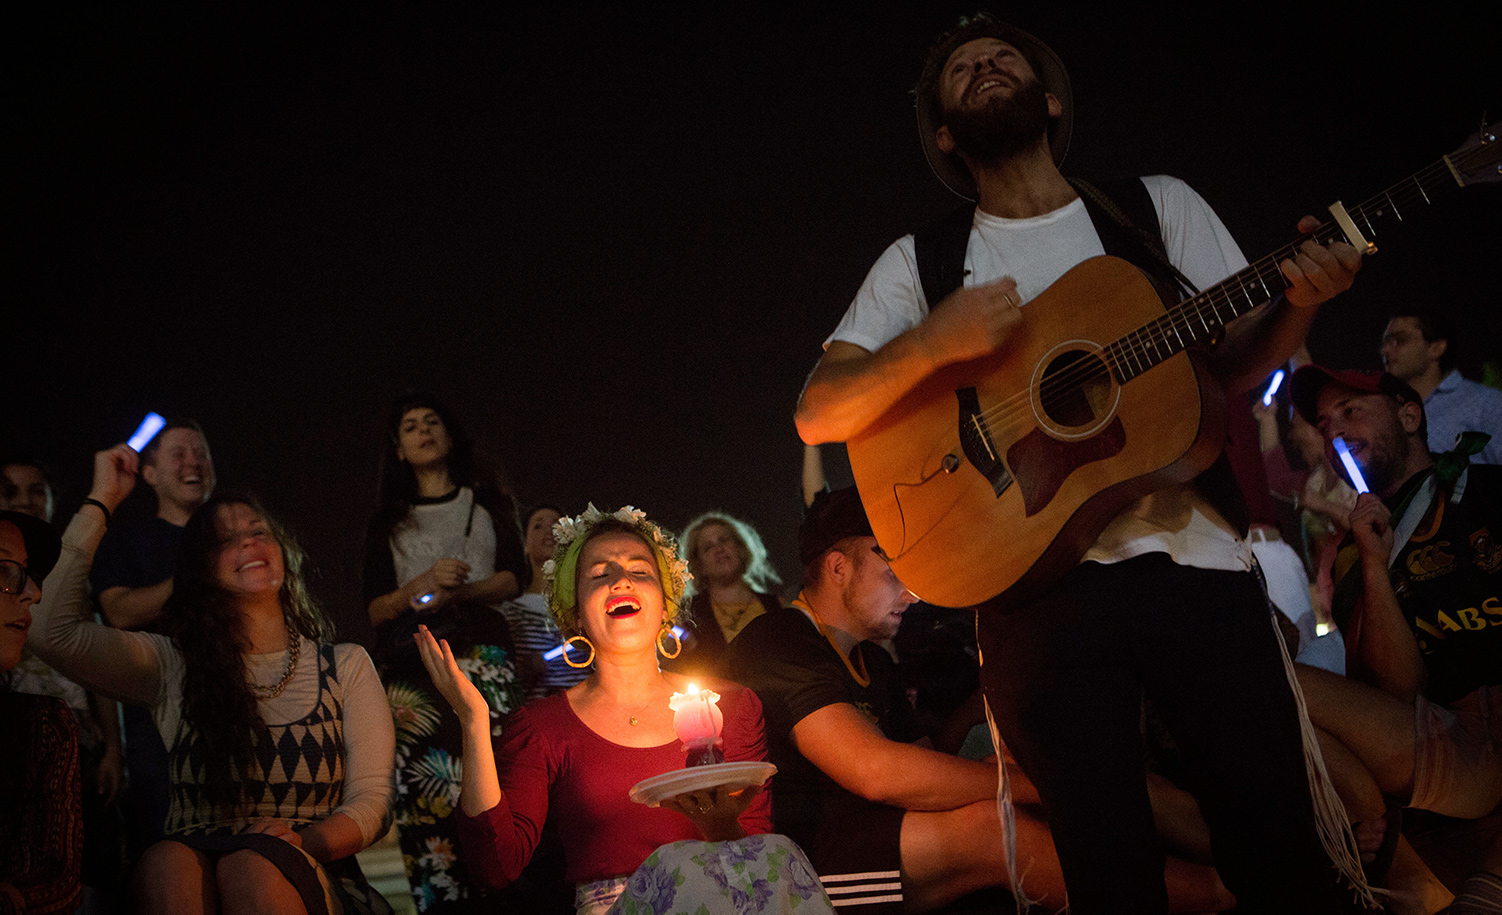 Young Israeli Jews sing at a Havdalah ceremony in Tel Aviv on October 24, 2015. Miriam Alster/FLASH90.